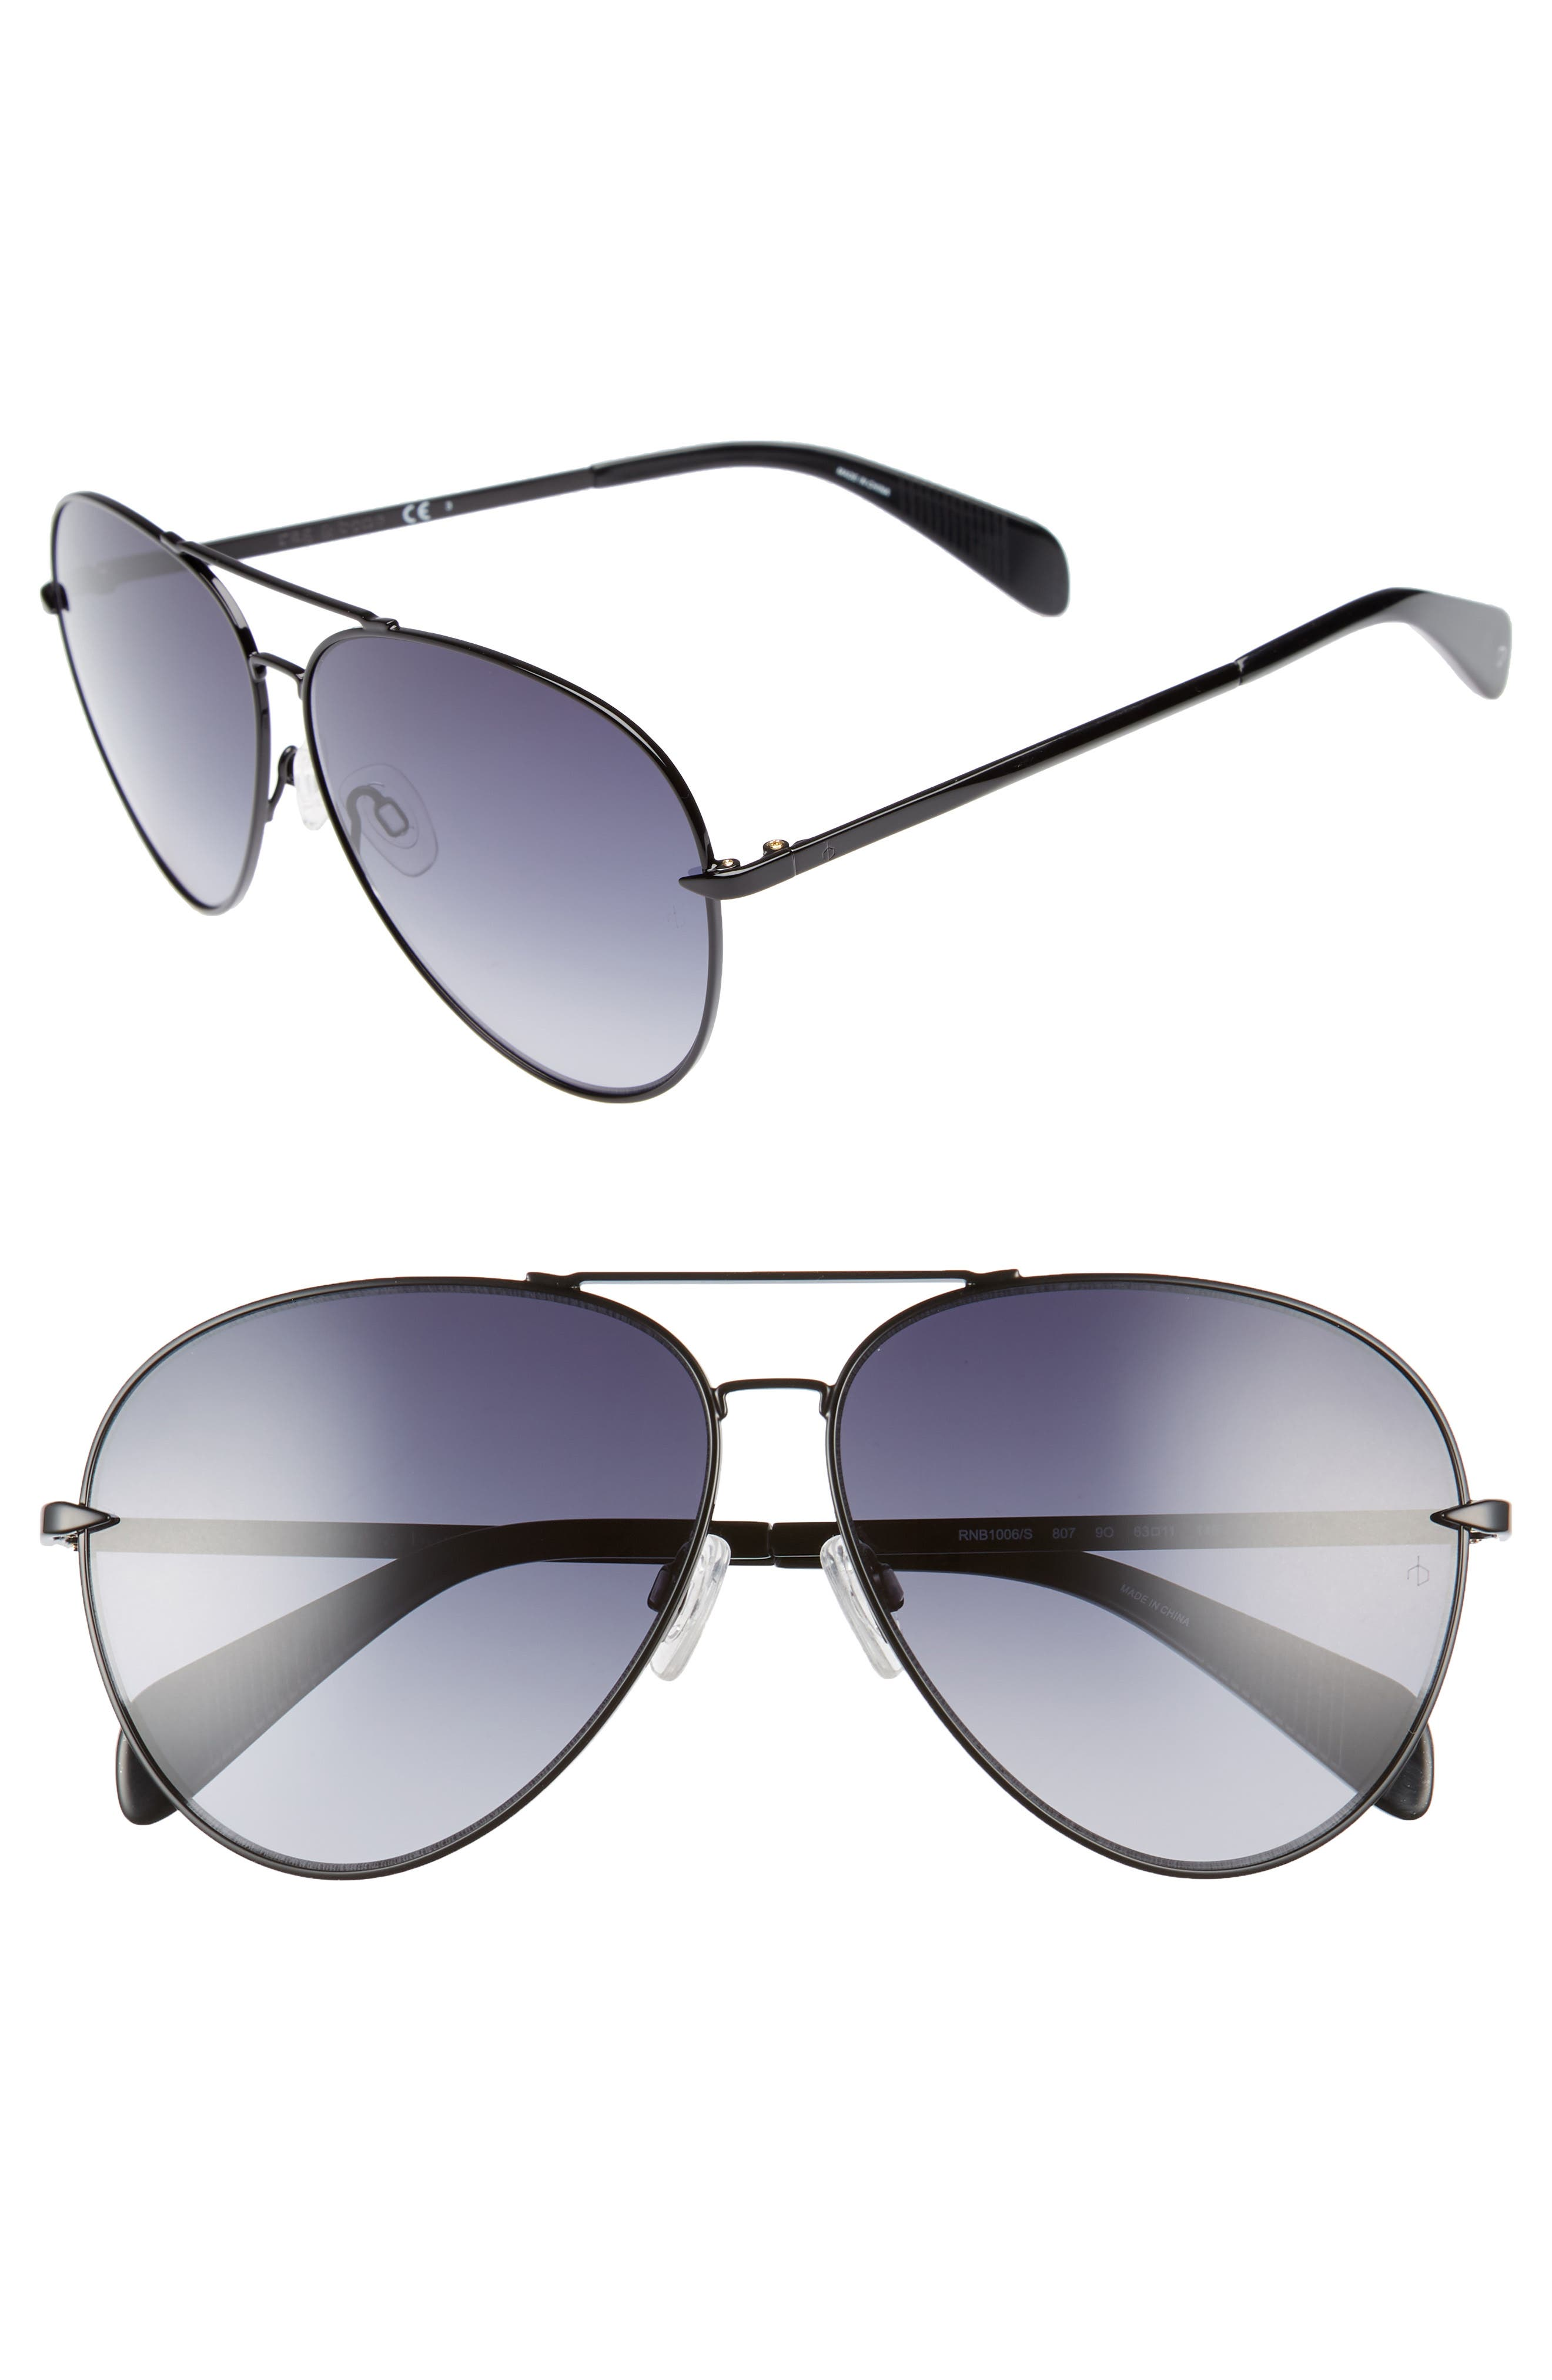 RAG & BONE,                             63mm Oversize Aviator Sunglasses,                             Main thumbnail 1, color,                             BLACK